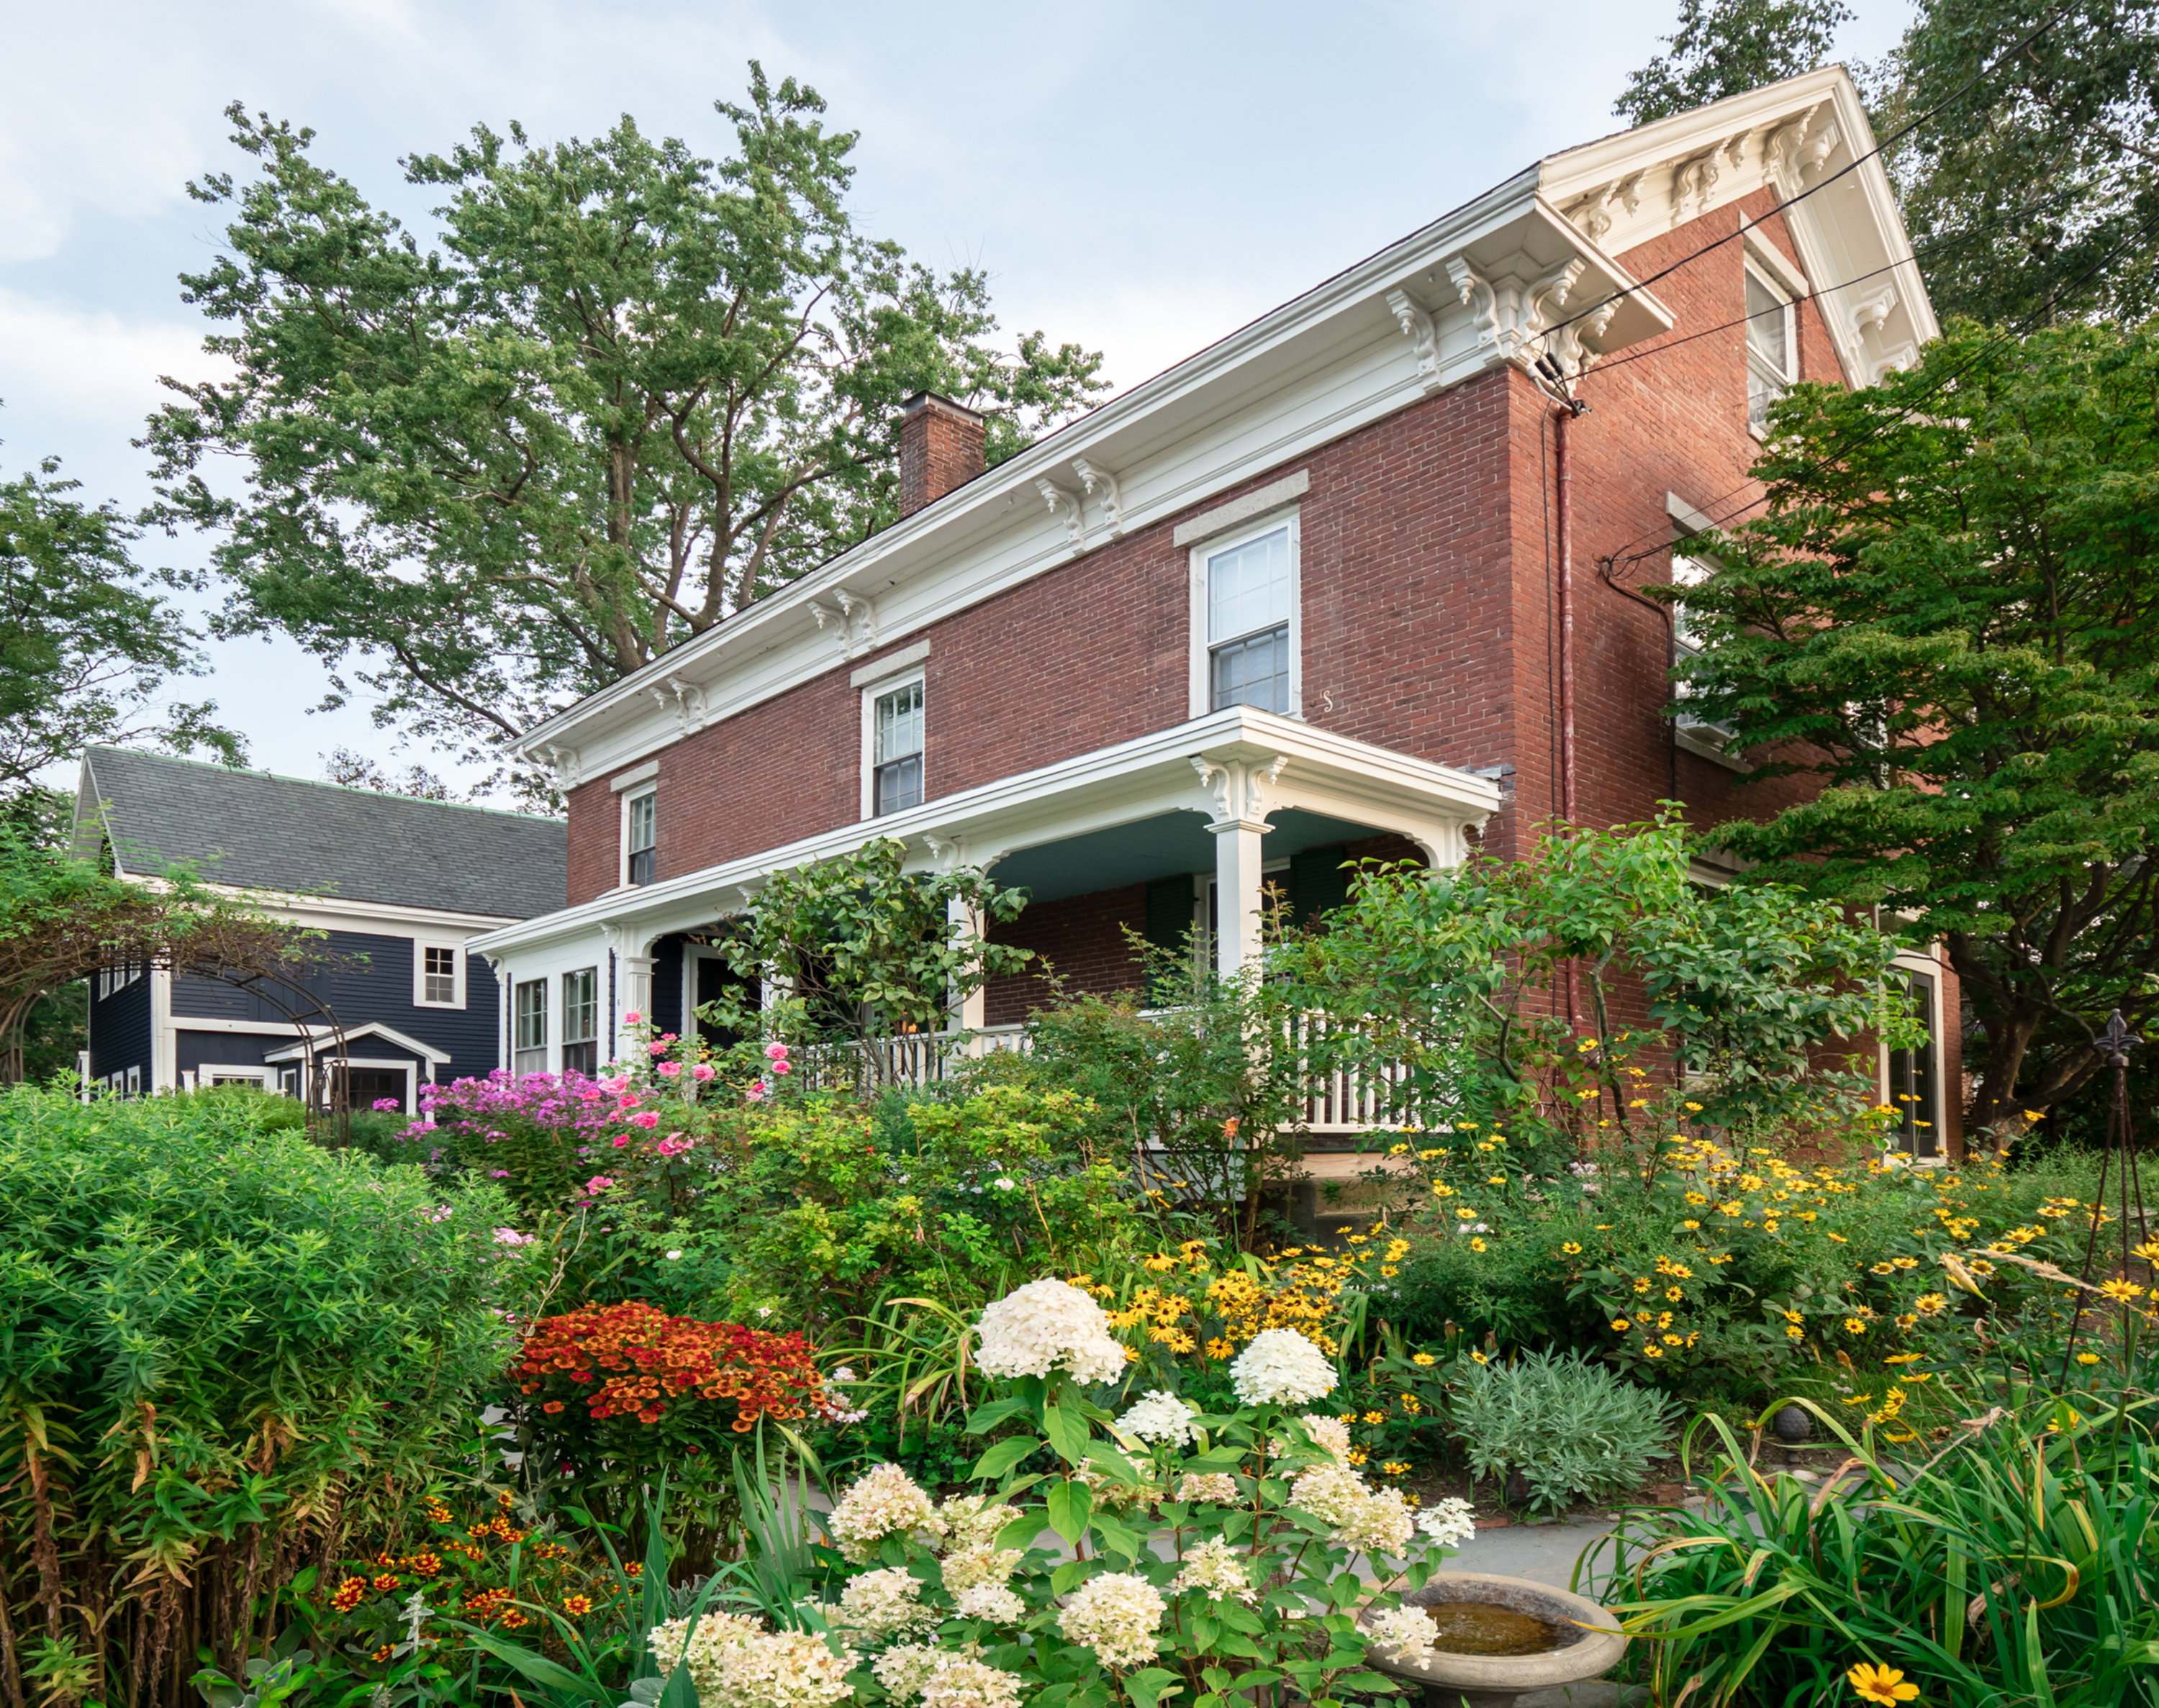 A house with bushes in front of a brick building at Water Street Inn.